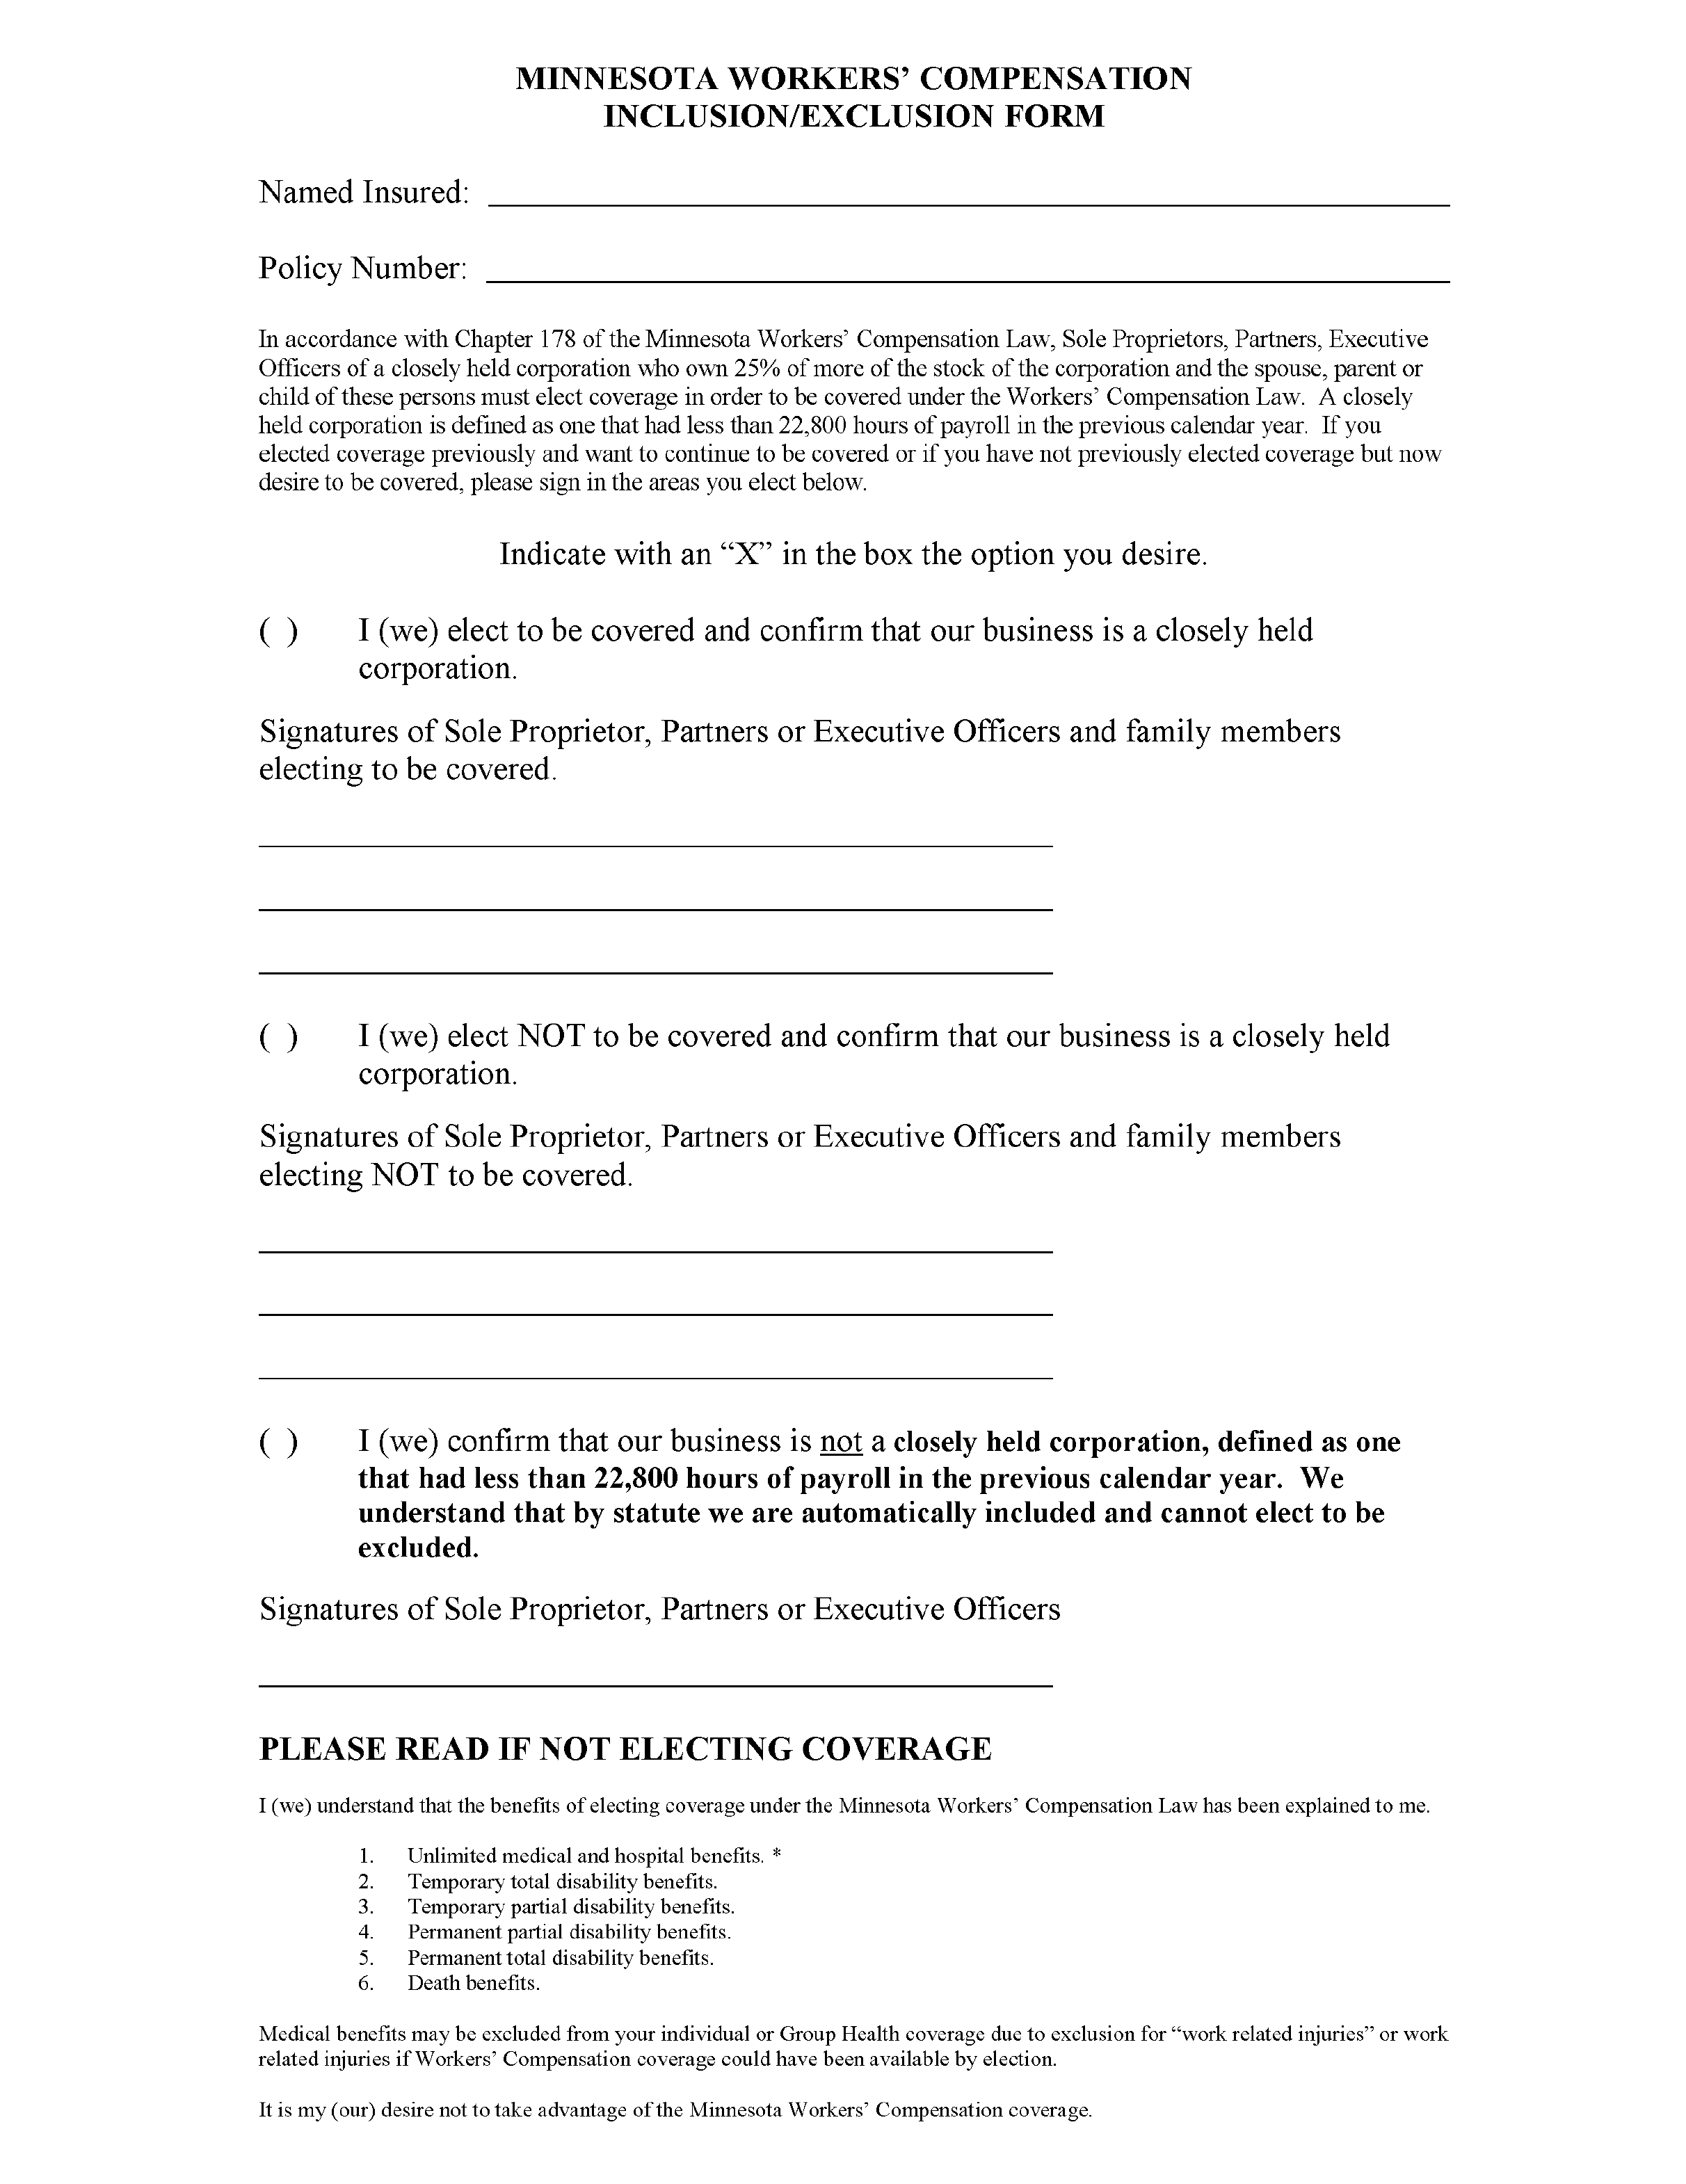 Workers Compensation Inclusion/Exclusion Form - Minnesota Free ...